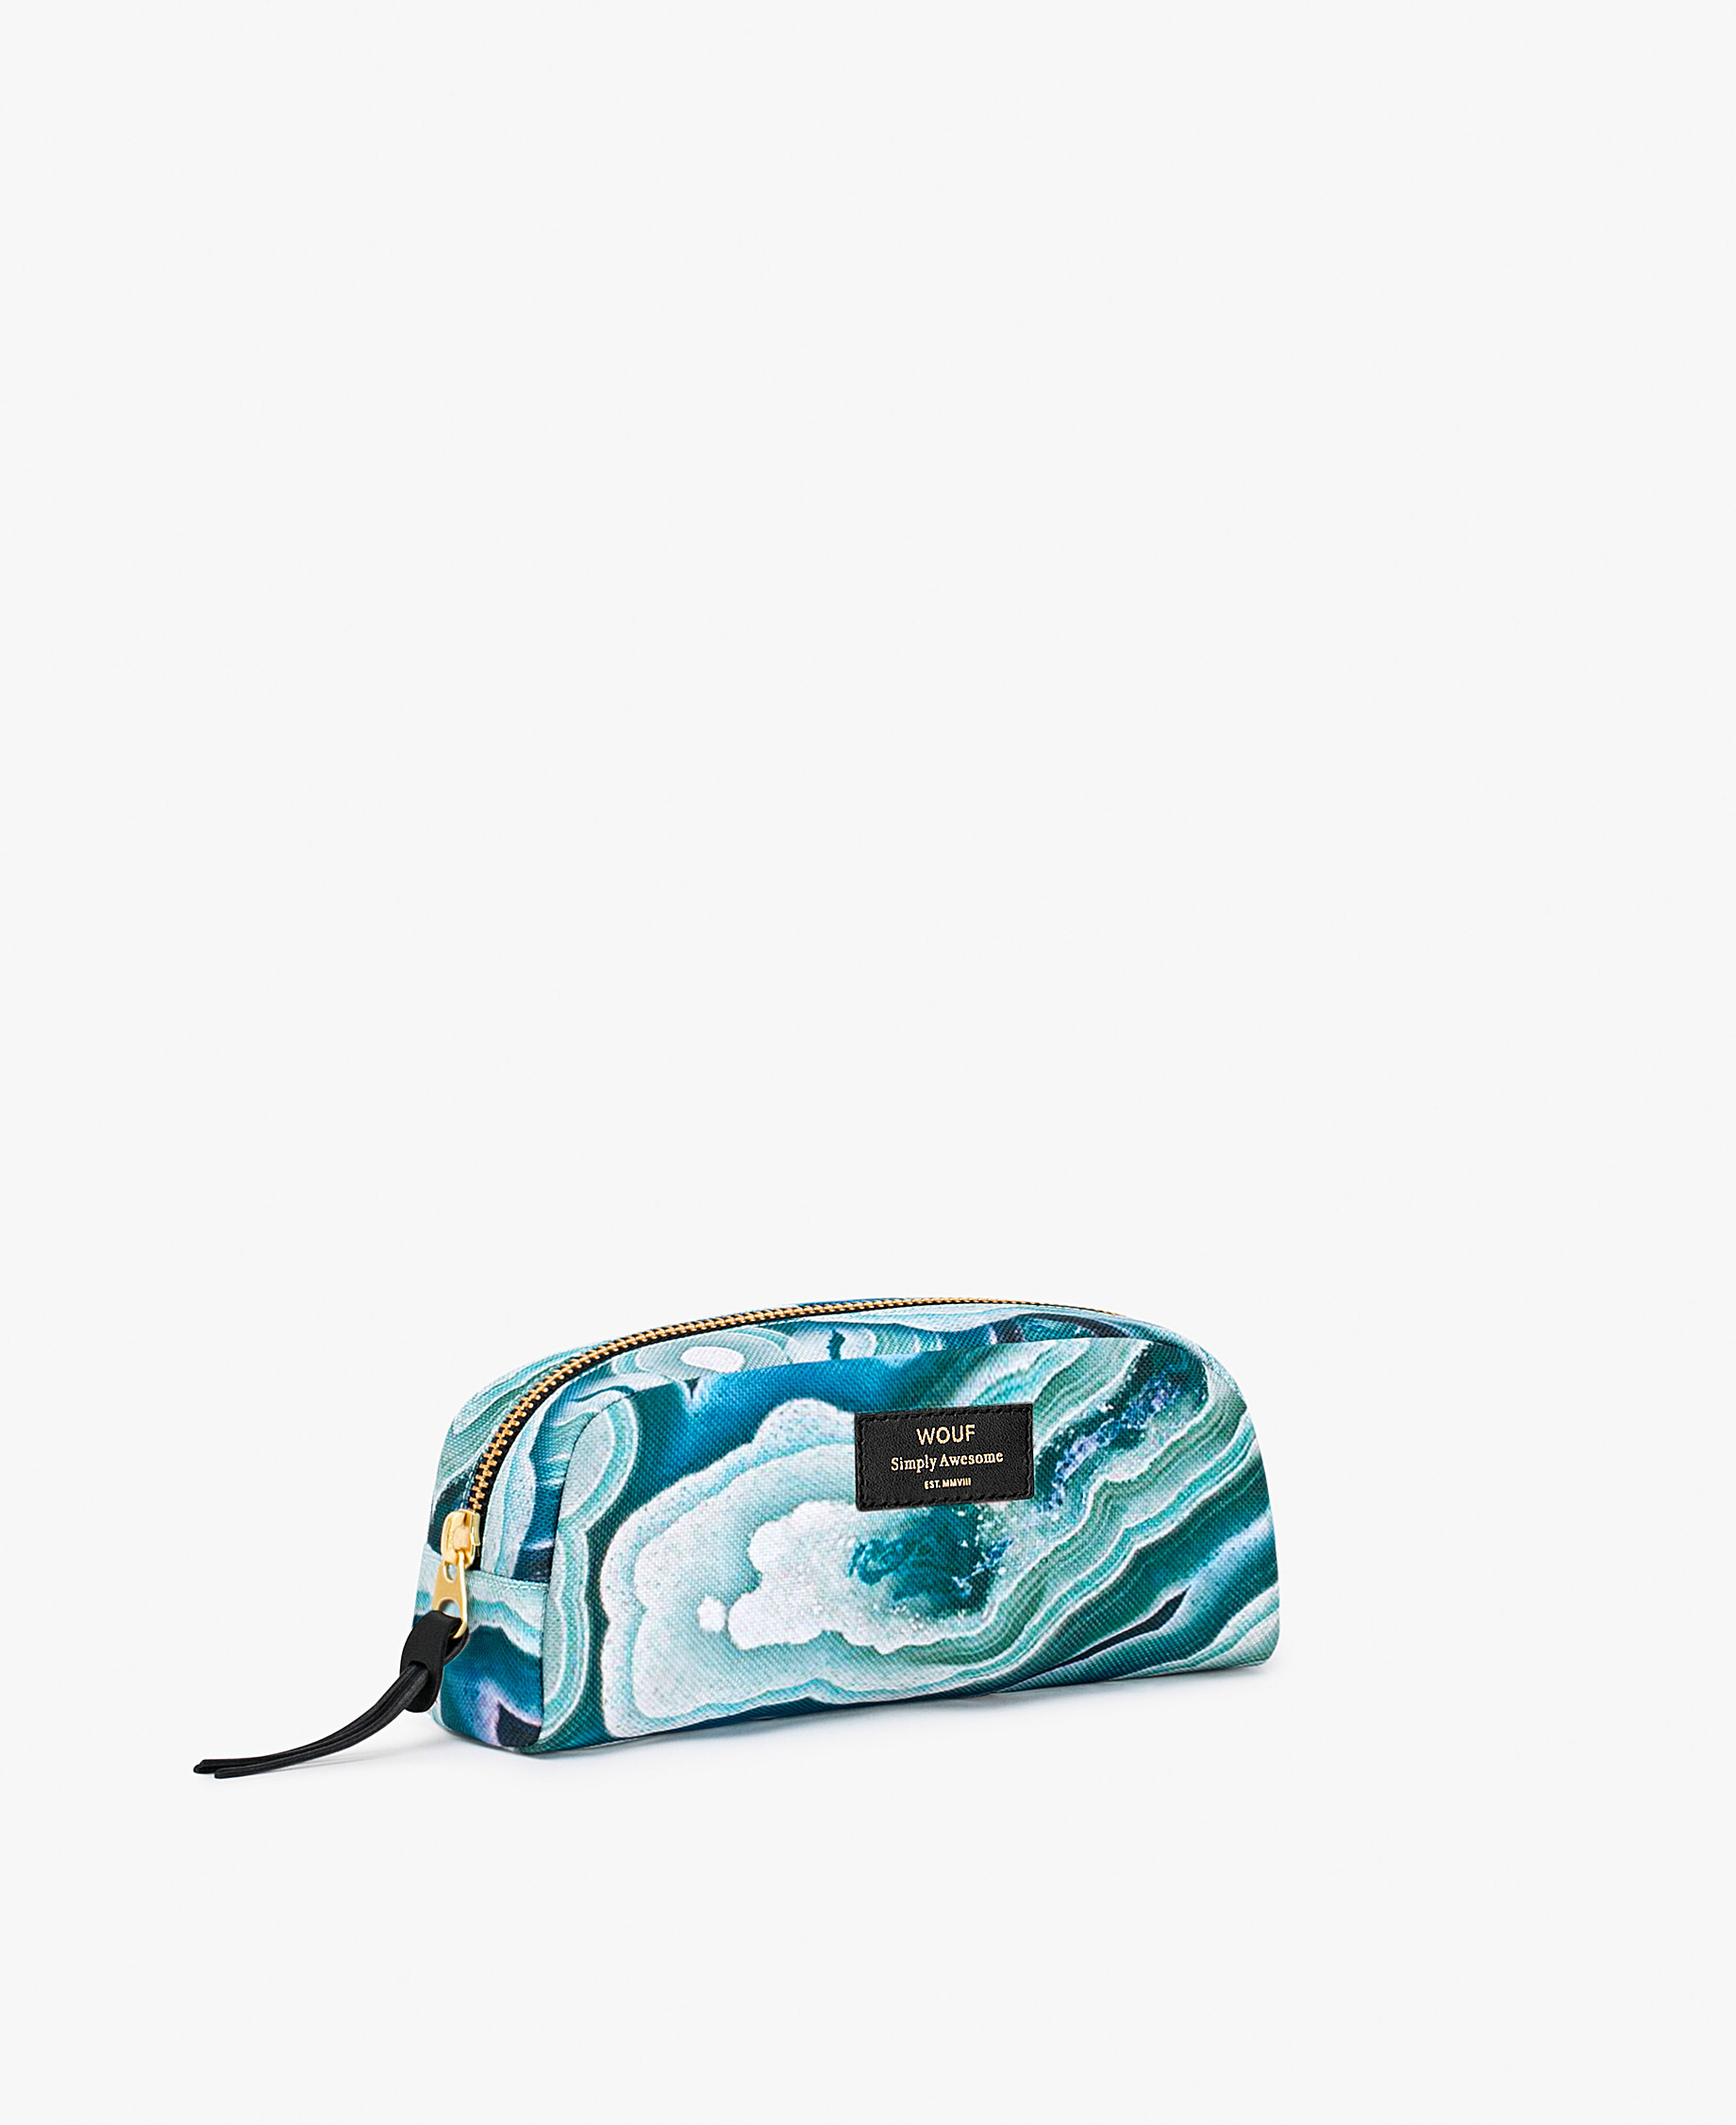 small blue toiletry bag